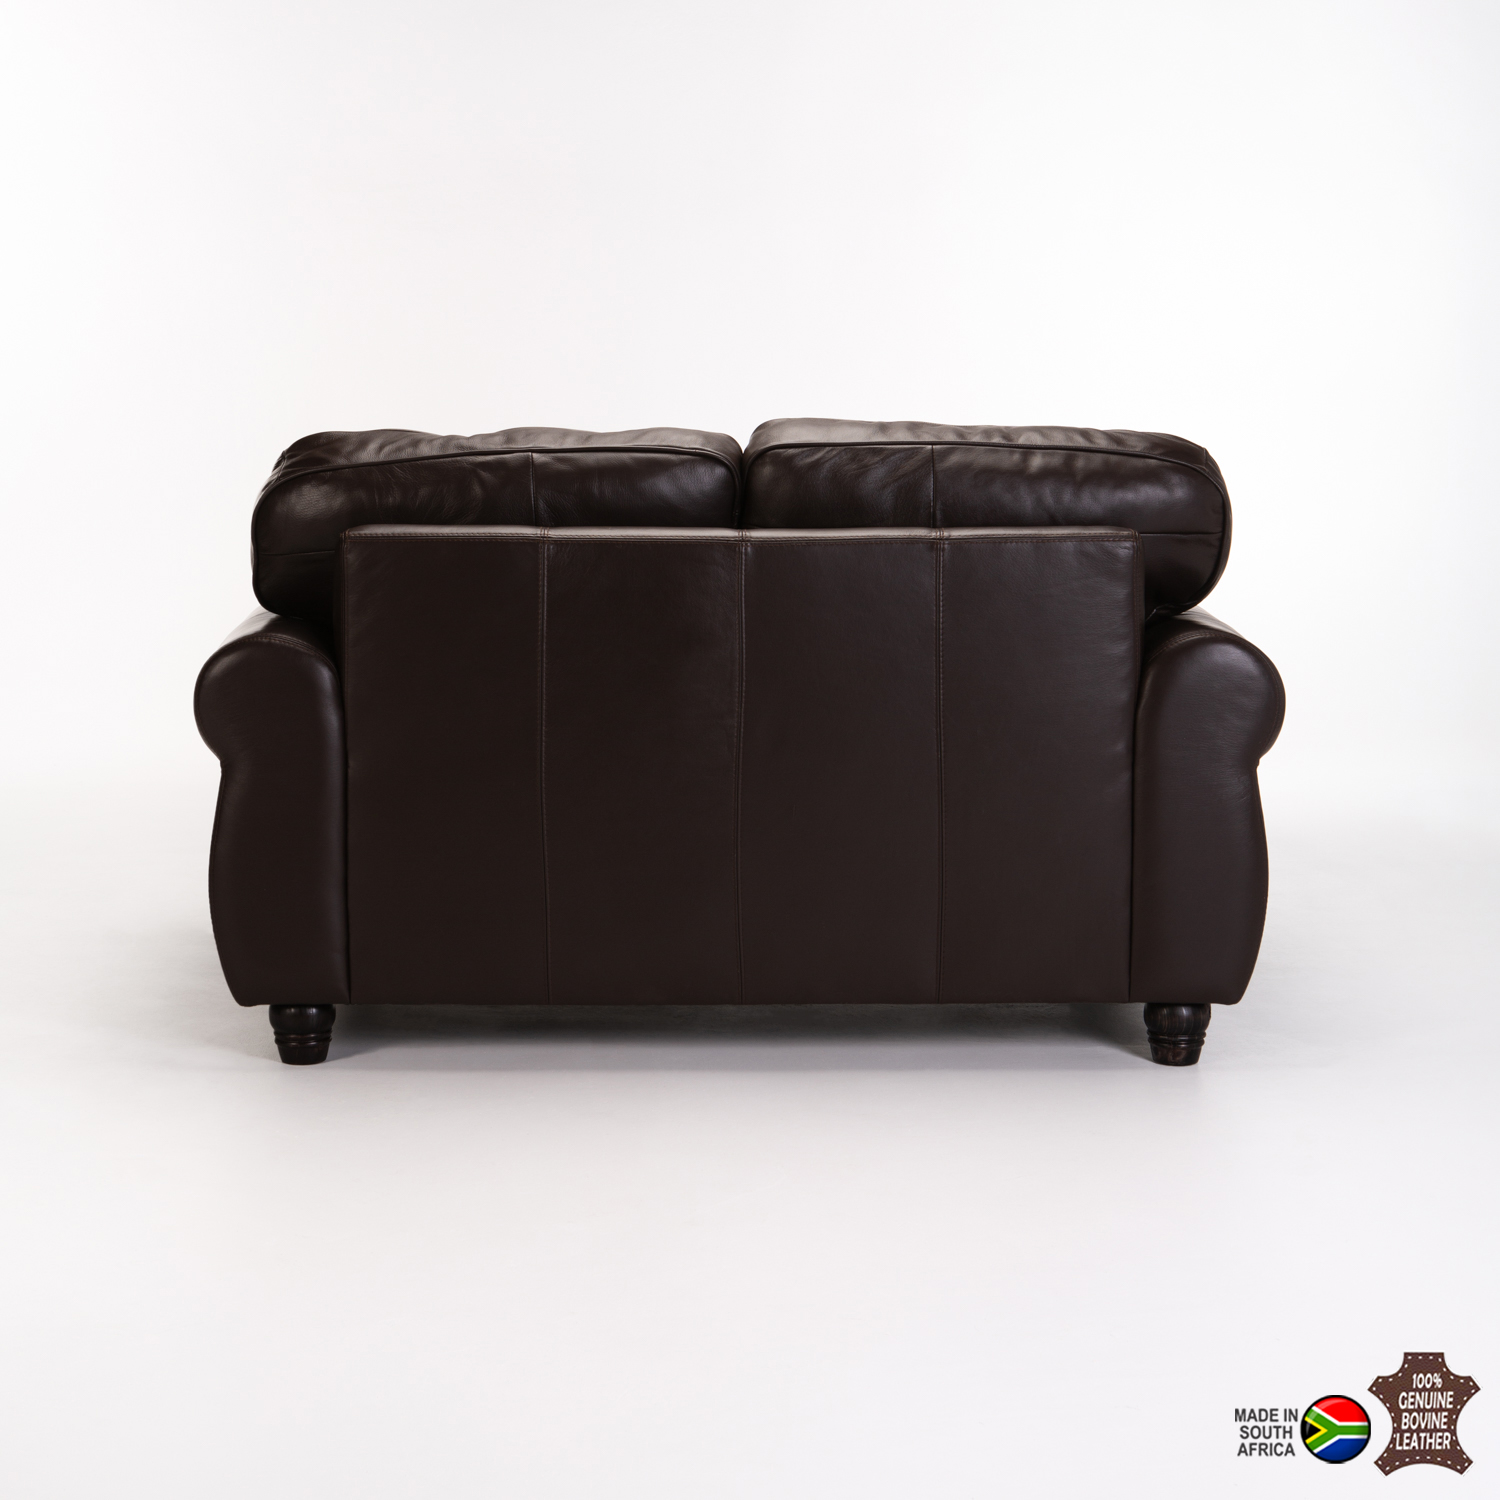 KINGSLEY GENUINE LEATHER 2 SEATER